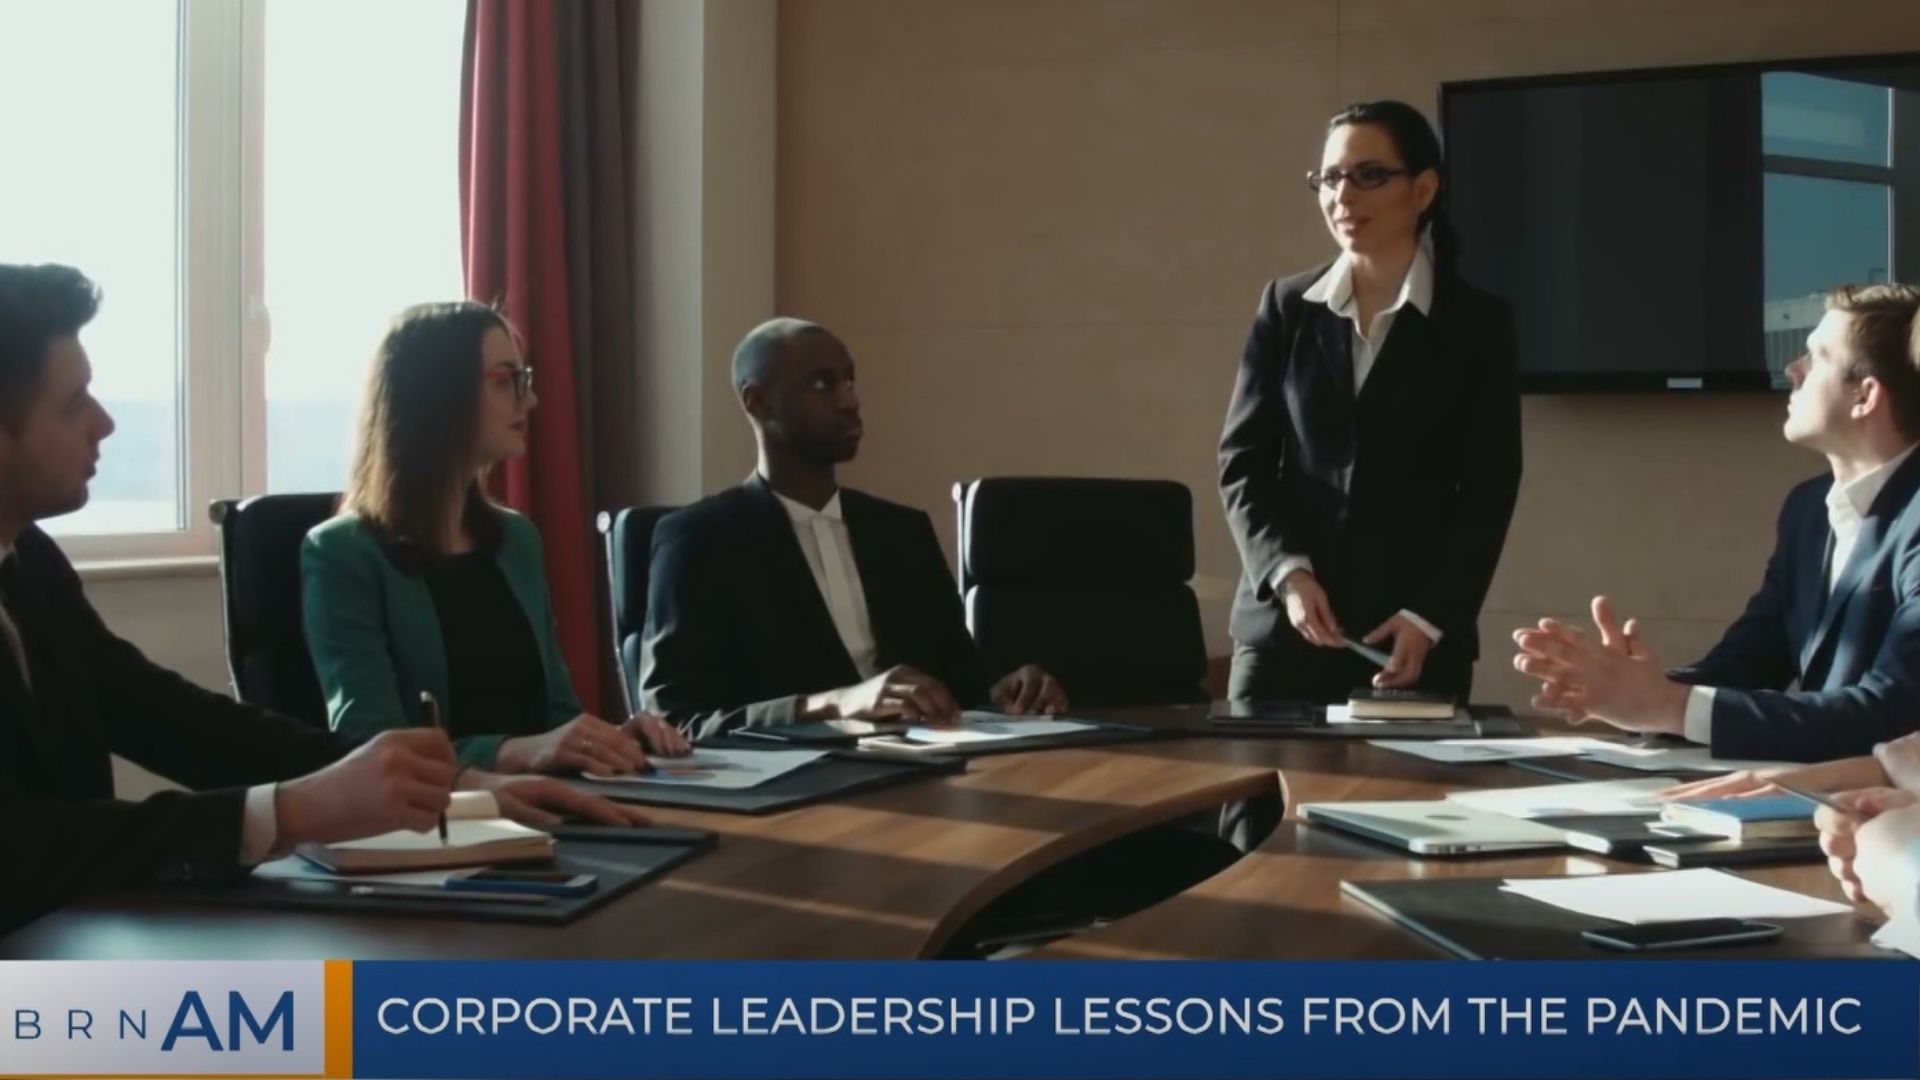 BRN AM   Corporate leadership lessons from the pandemic